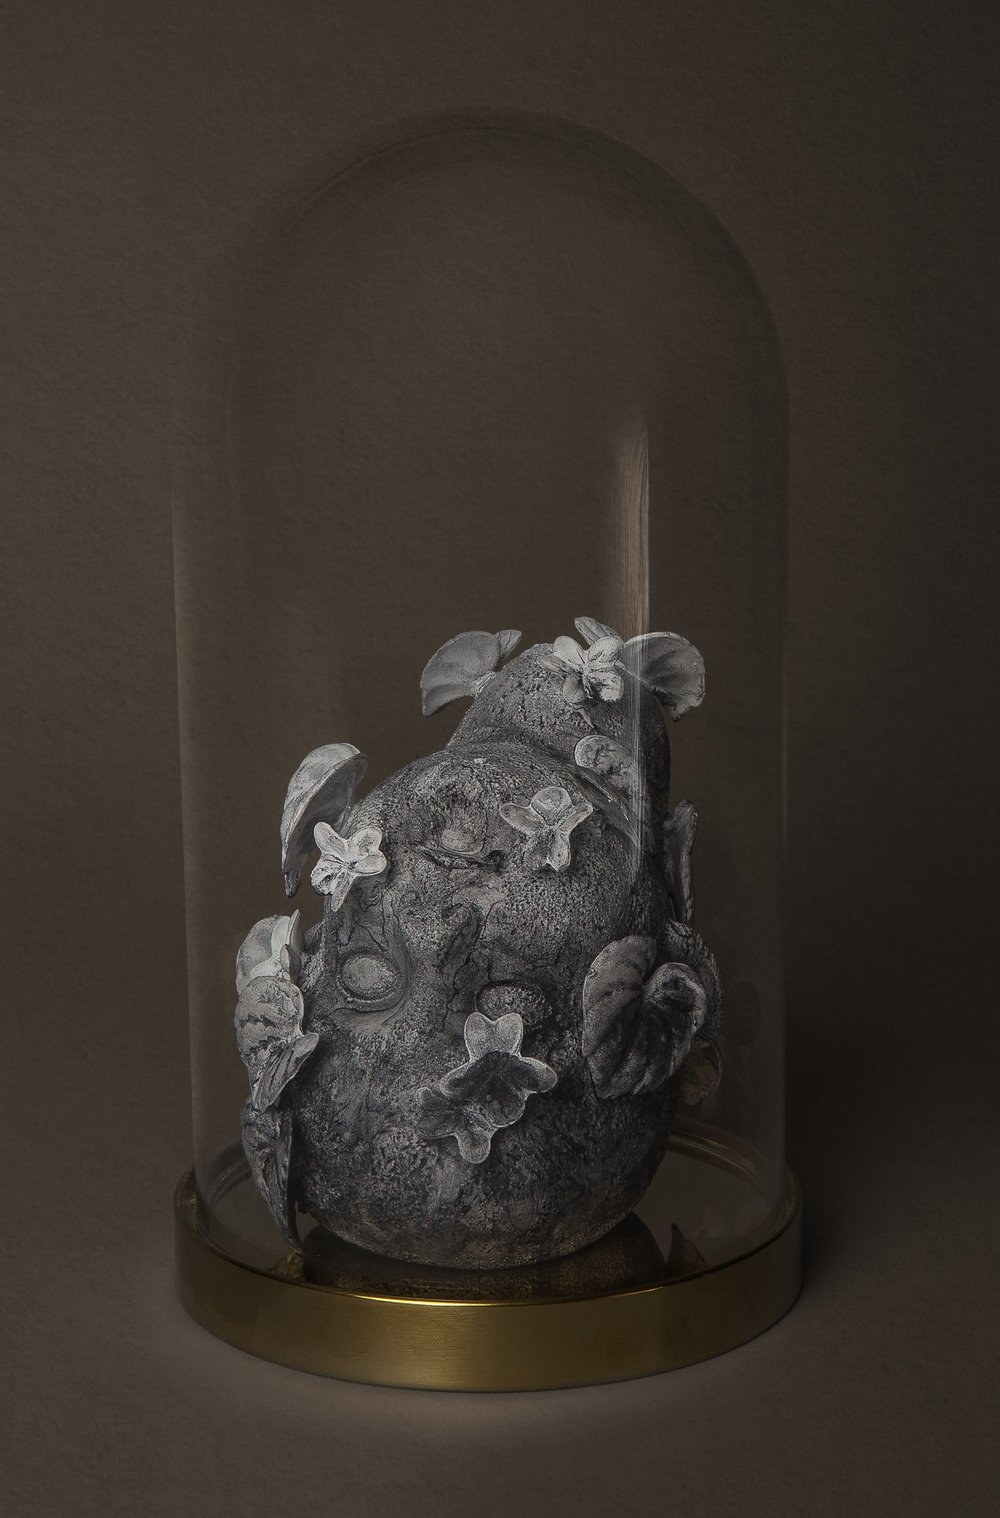 Death of a Nation, Time as lovers and faithful sinners  Medium: Porcelain ceramic with cast altered forms and hand built  Year: 2019  Photography by: David Gary Lloyd